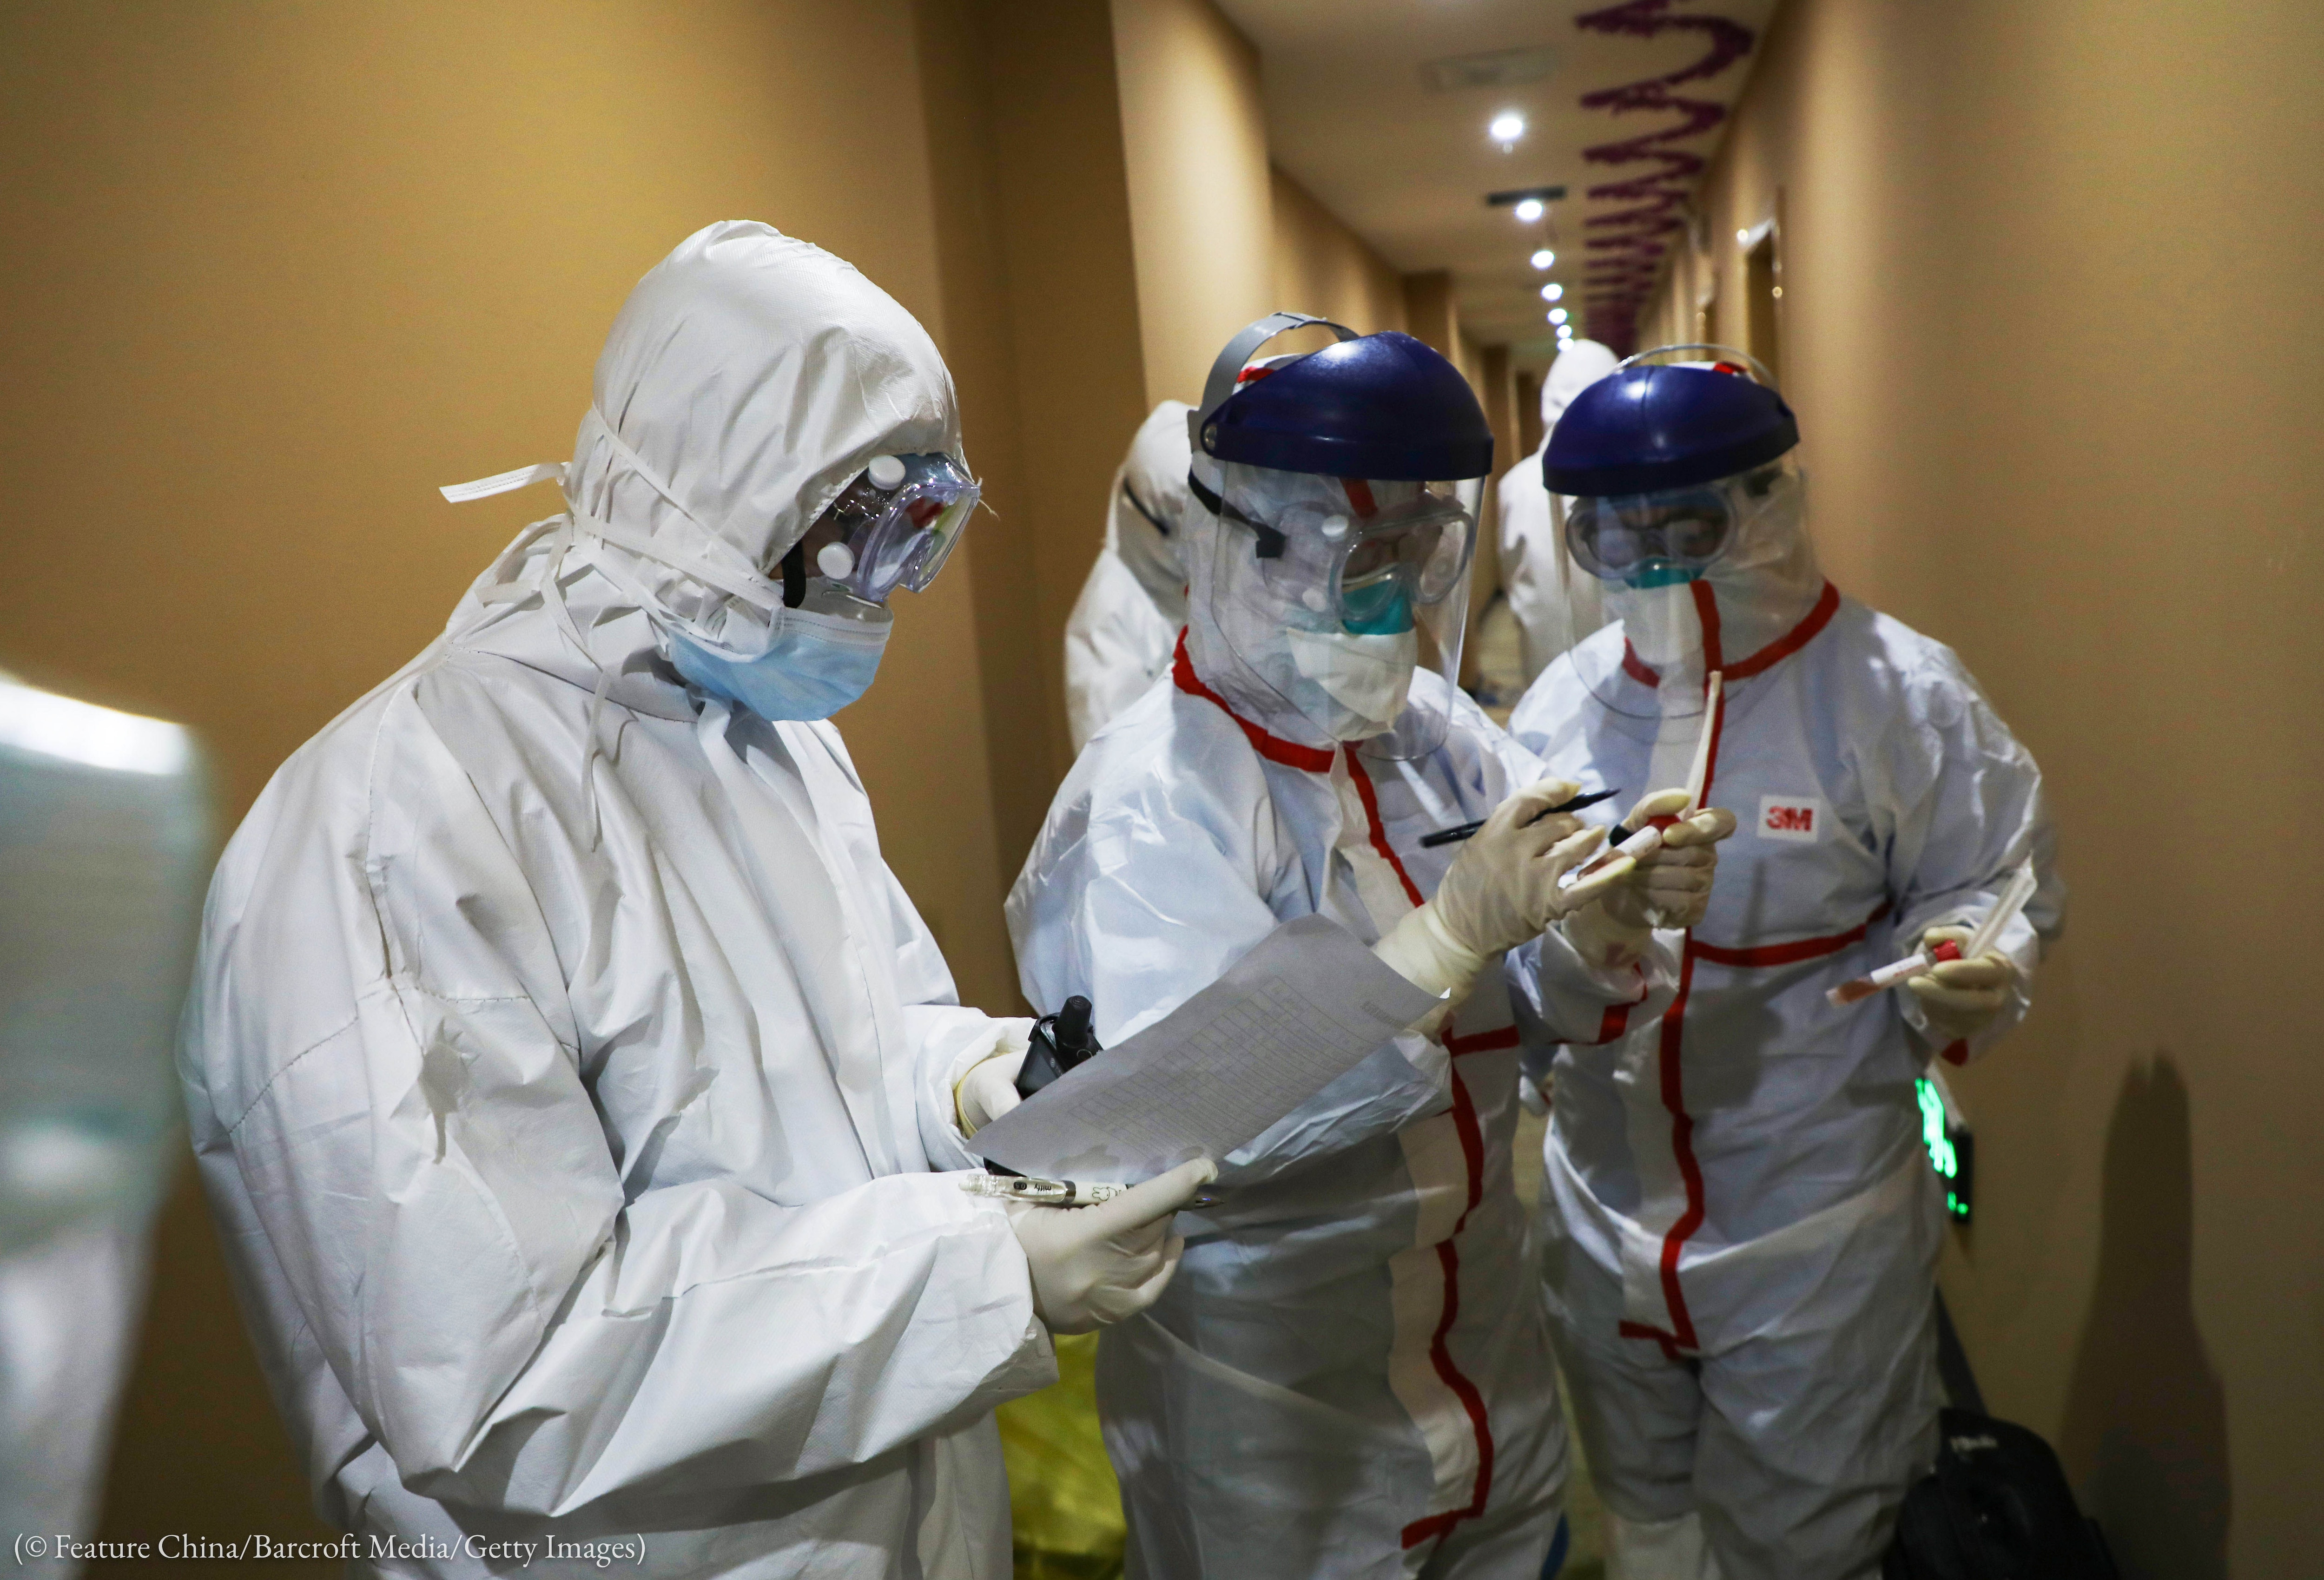 Health workers in protective garb taking notes in a hallway (© Feature China/Barcroft Media/Getty Images)